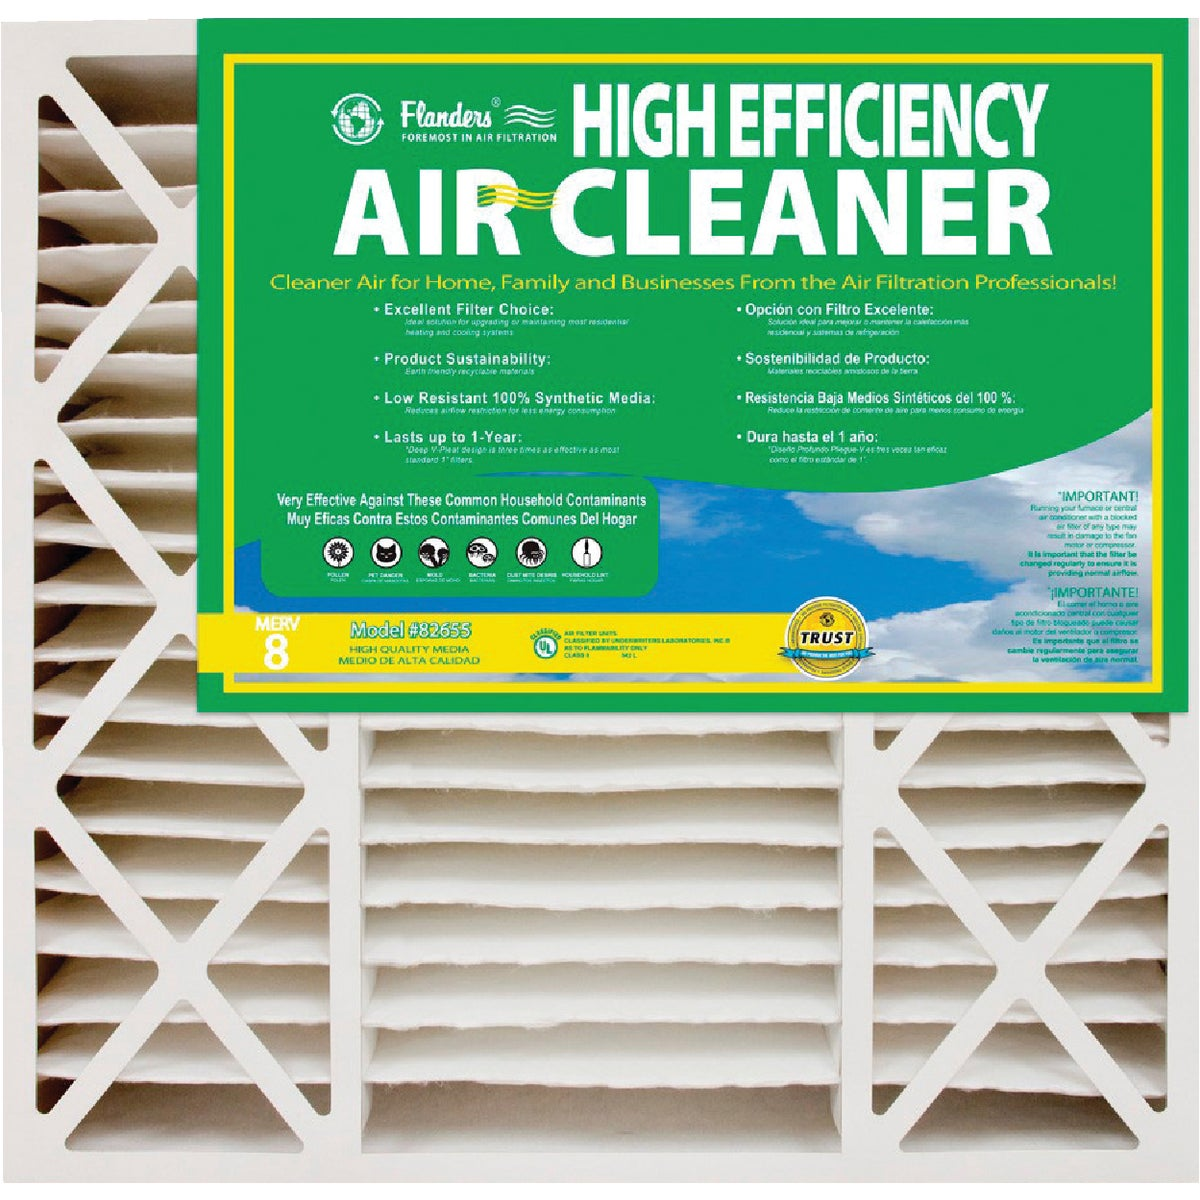 Flanders/Precisionaire 16X25X5 FURNACE FILTER 82655.0451625